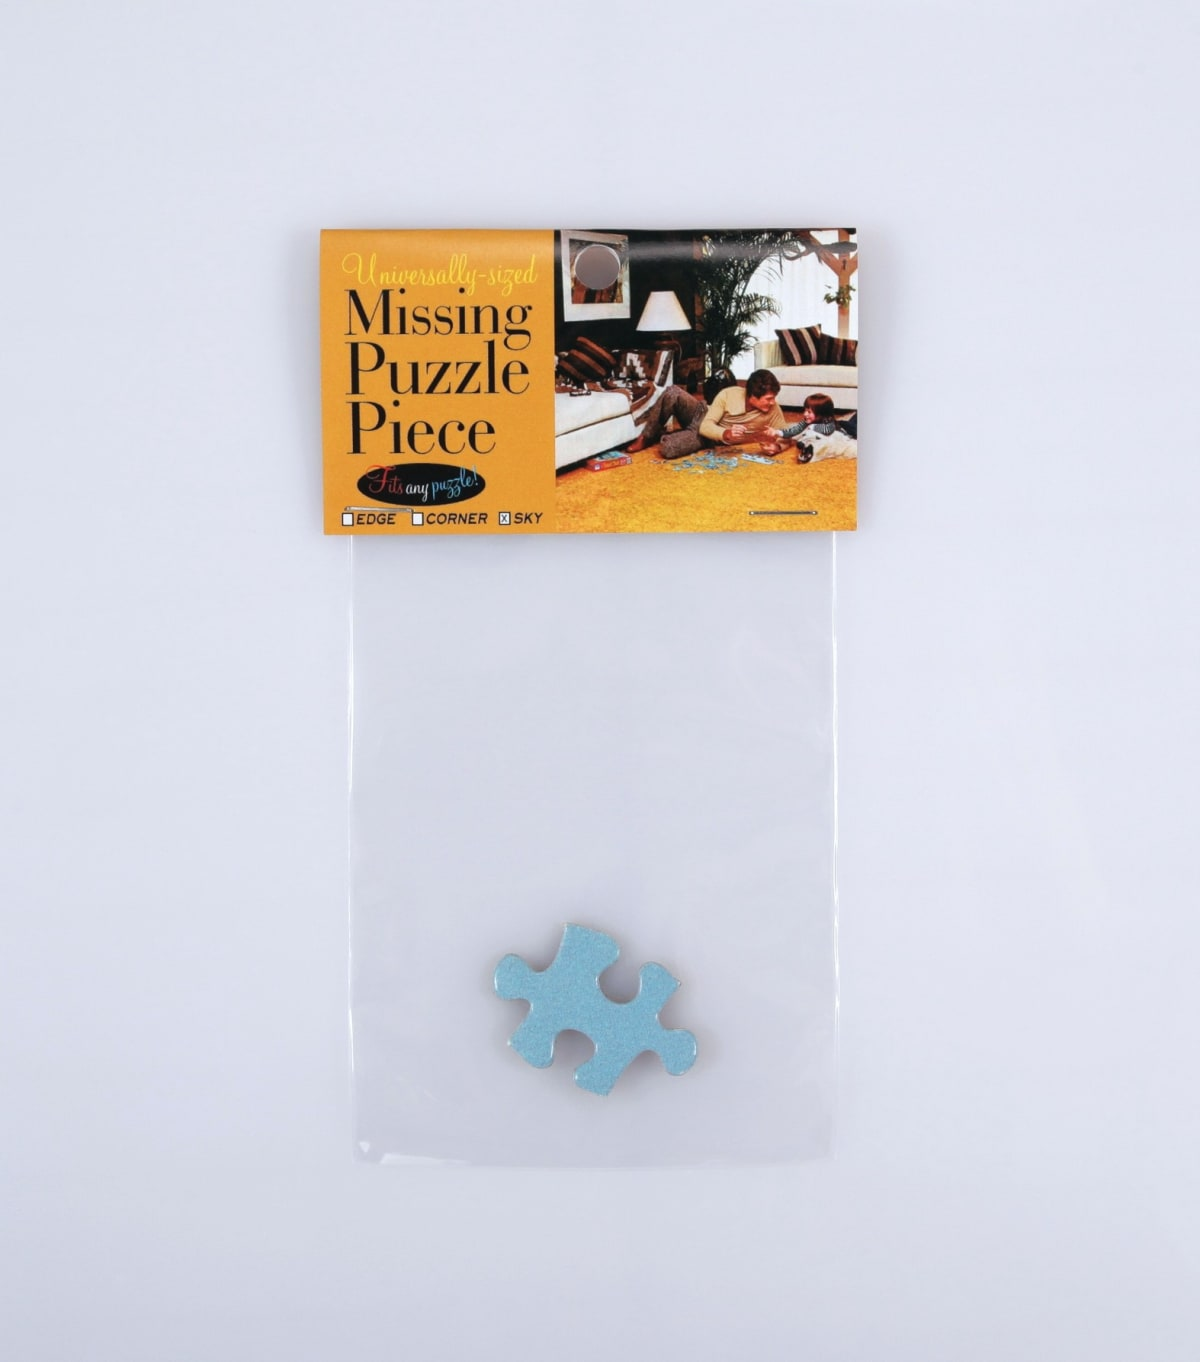 Universally-sized missing puzzle piece